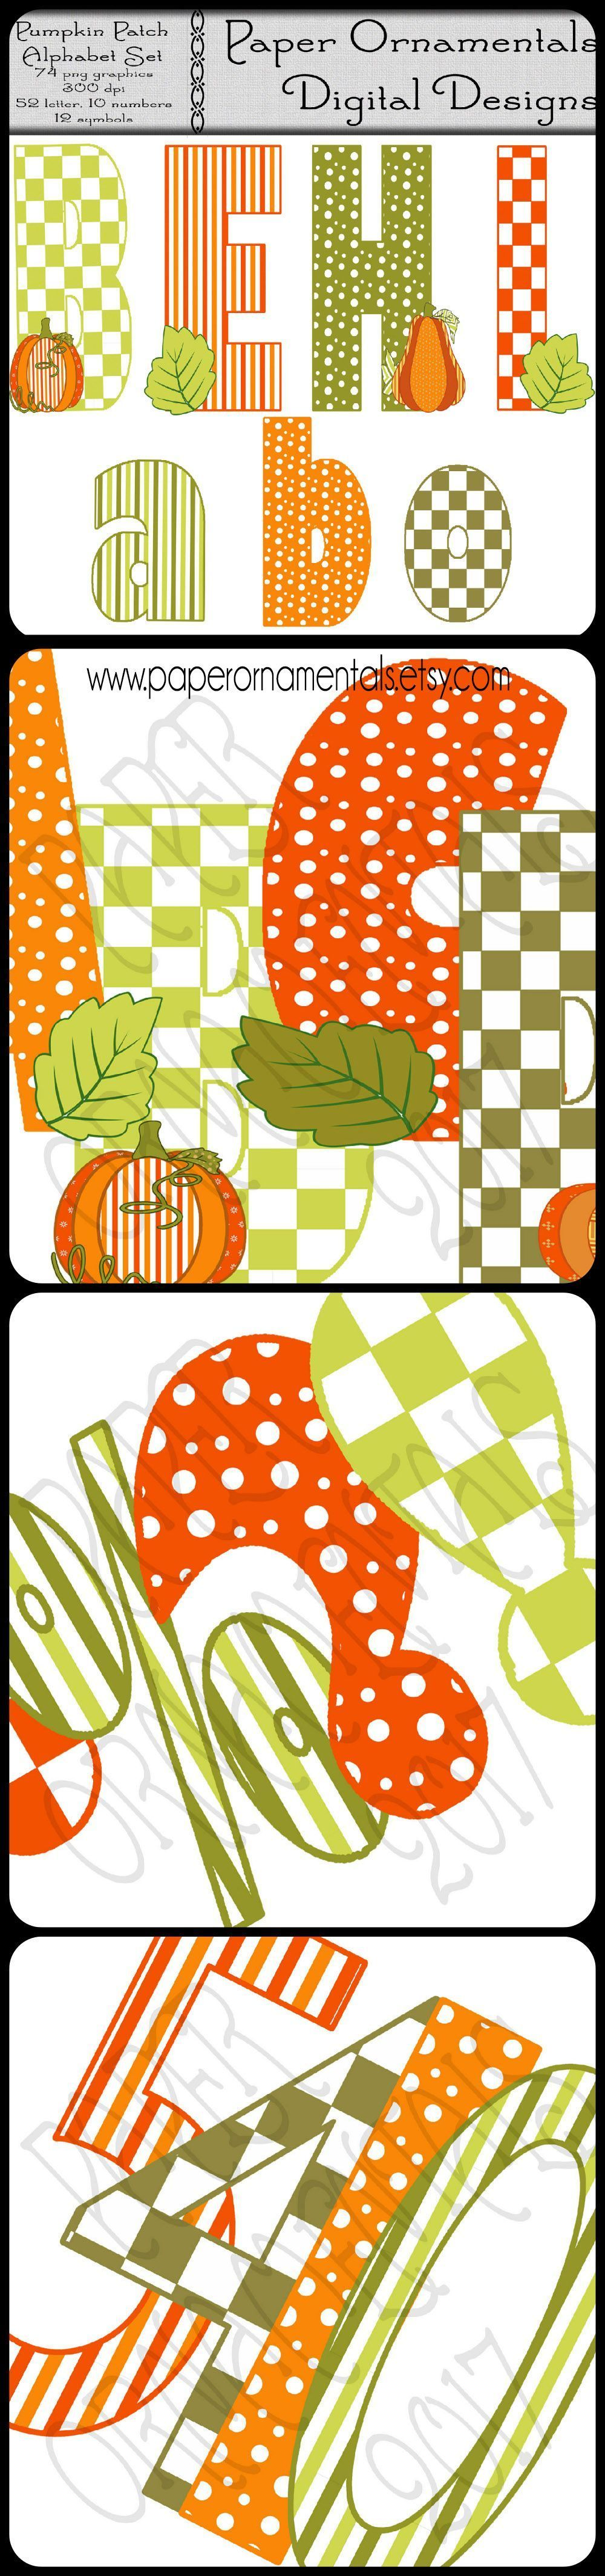 Instant Digital Download Alphabet Set, Digital Alphabet Clipart, Printable Alphabet Letters, Fall Colors, Orange And Green, Dots And Stripes #pumpkinpatchbulletinboard Looking for some cute clip art for the autumn season? This set of Pumpkin Patch alphabet ciip art is downloadable and can be used over and over again for any fall season craft or scrapbook project. They are a fun teacher resource for teachers when creating that seasonal bulletin board!  Fall colors make it just right for the seaso #pumpkinpatchbulletinboard